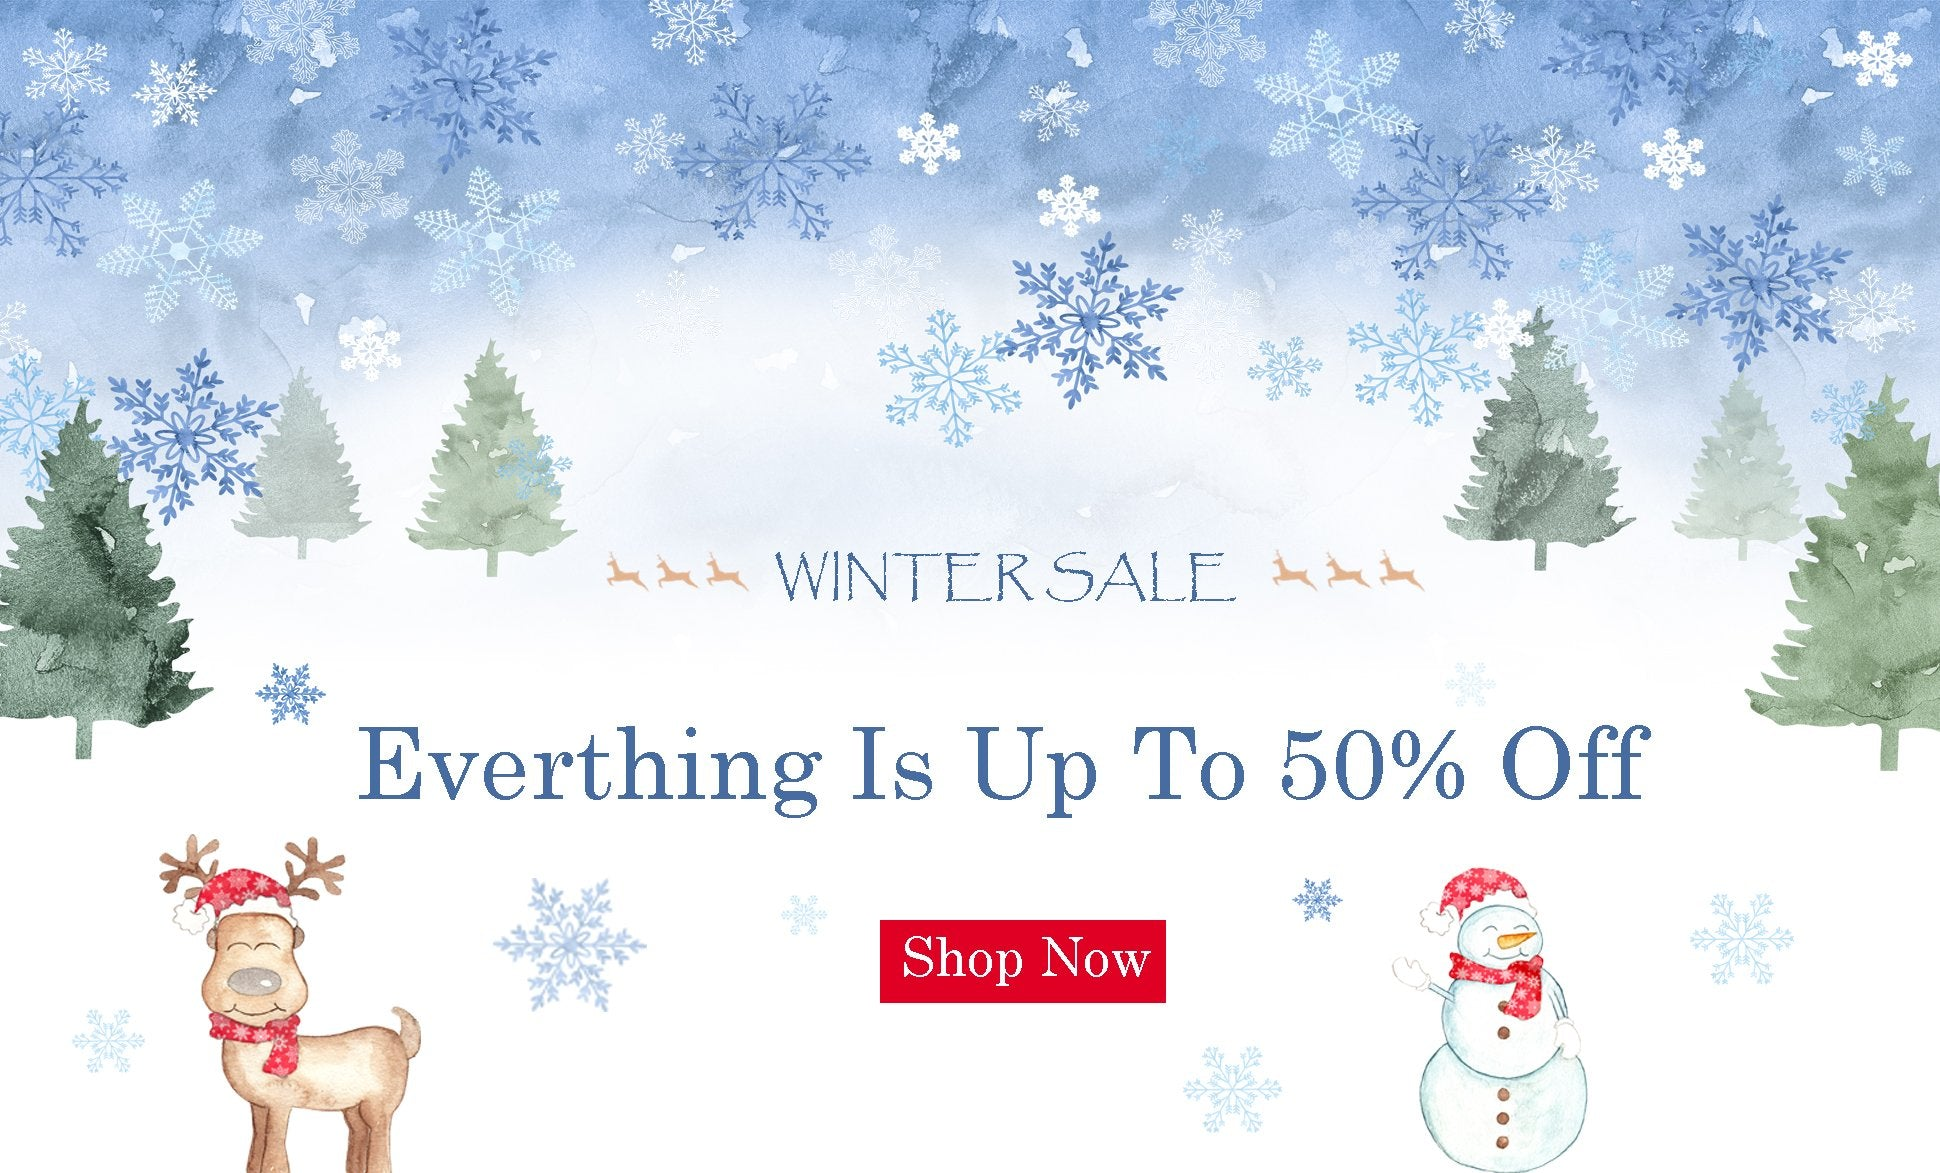 WINTER SALE: everything is up to 50% off